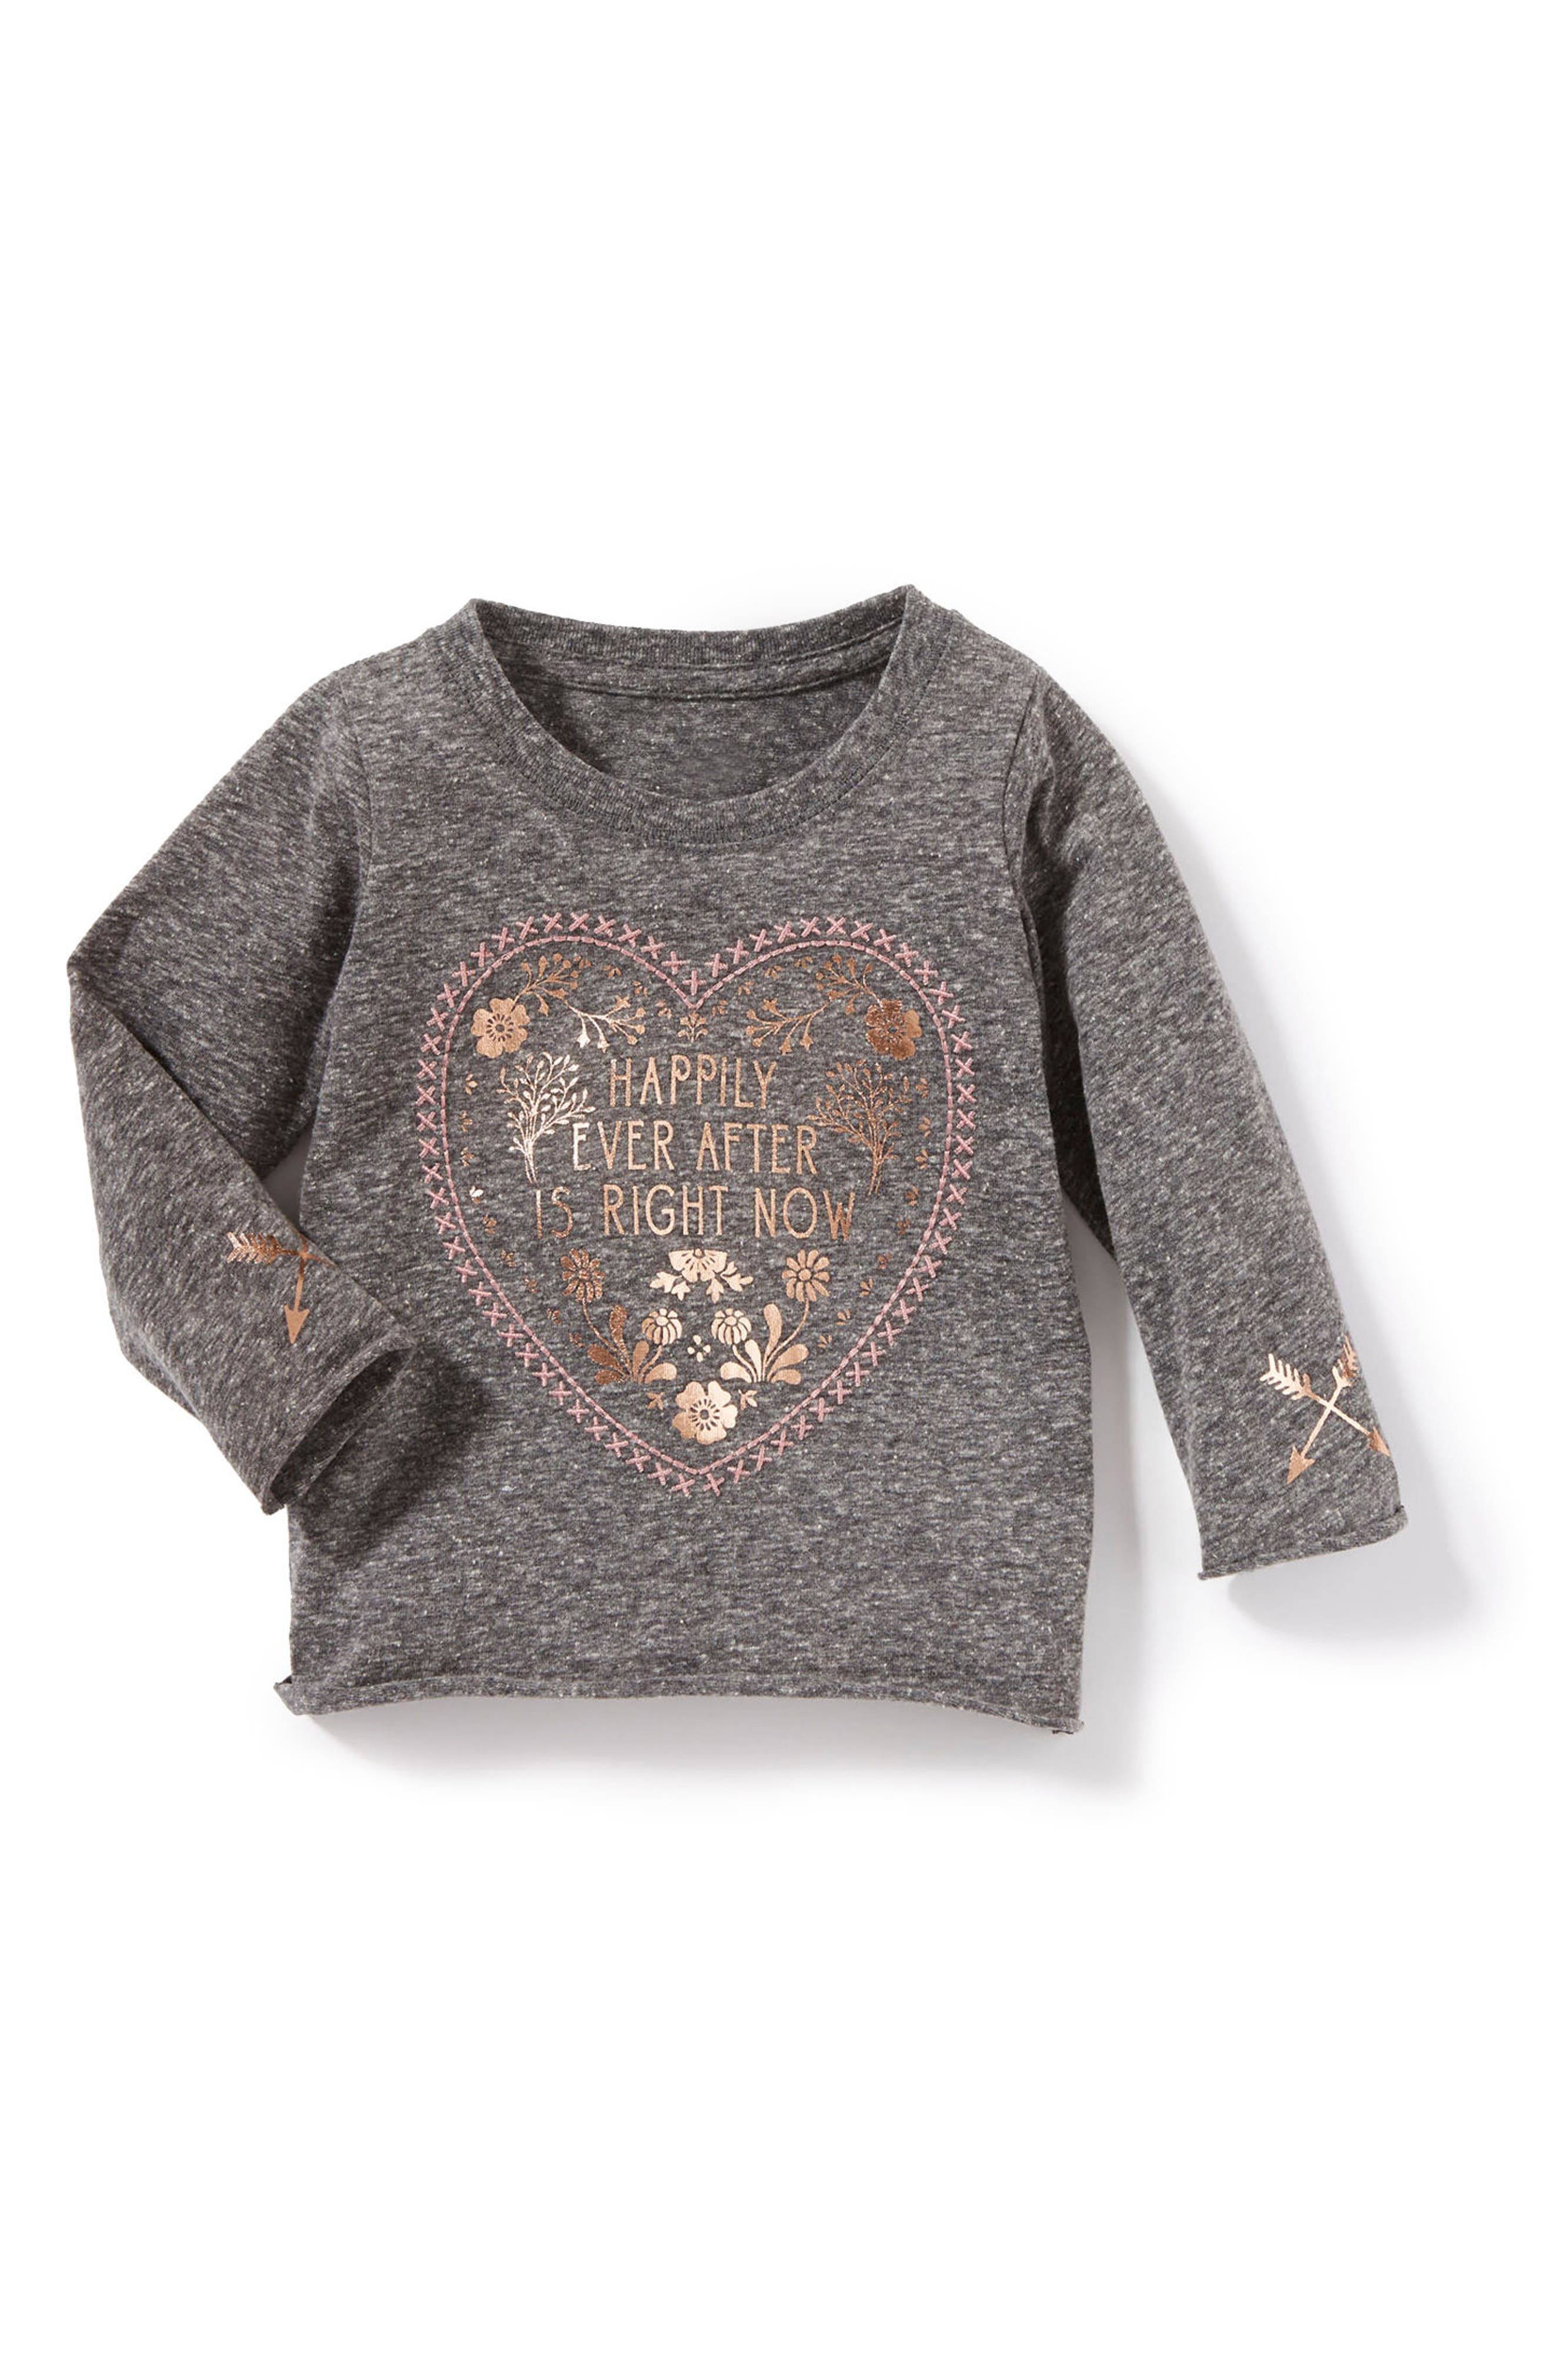 Main Image - Peek Happily Ever After Graphic Tee (Baby Girls)